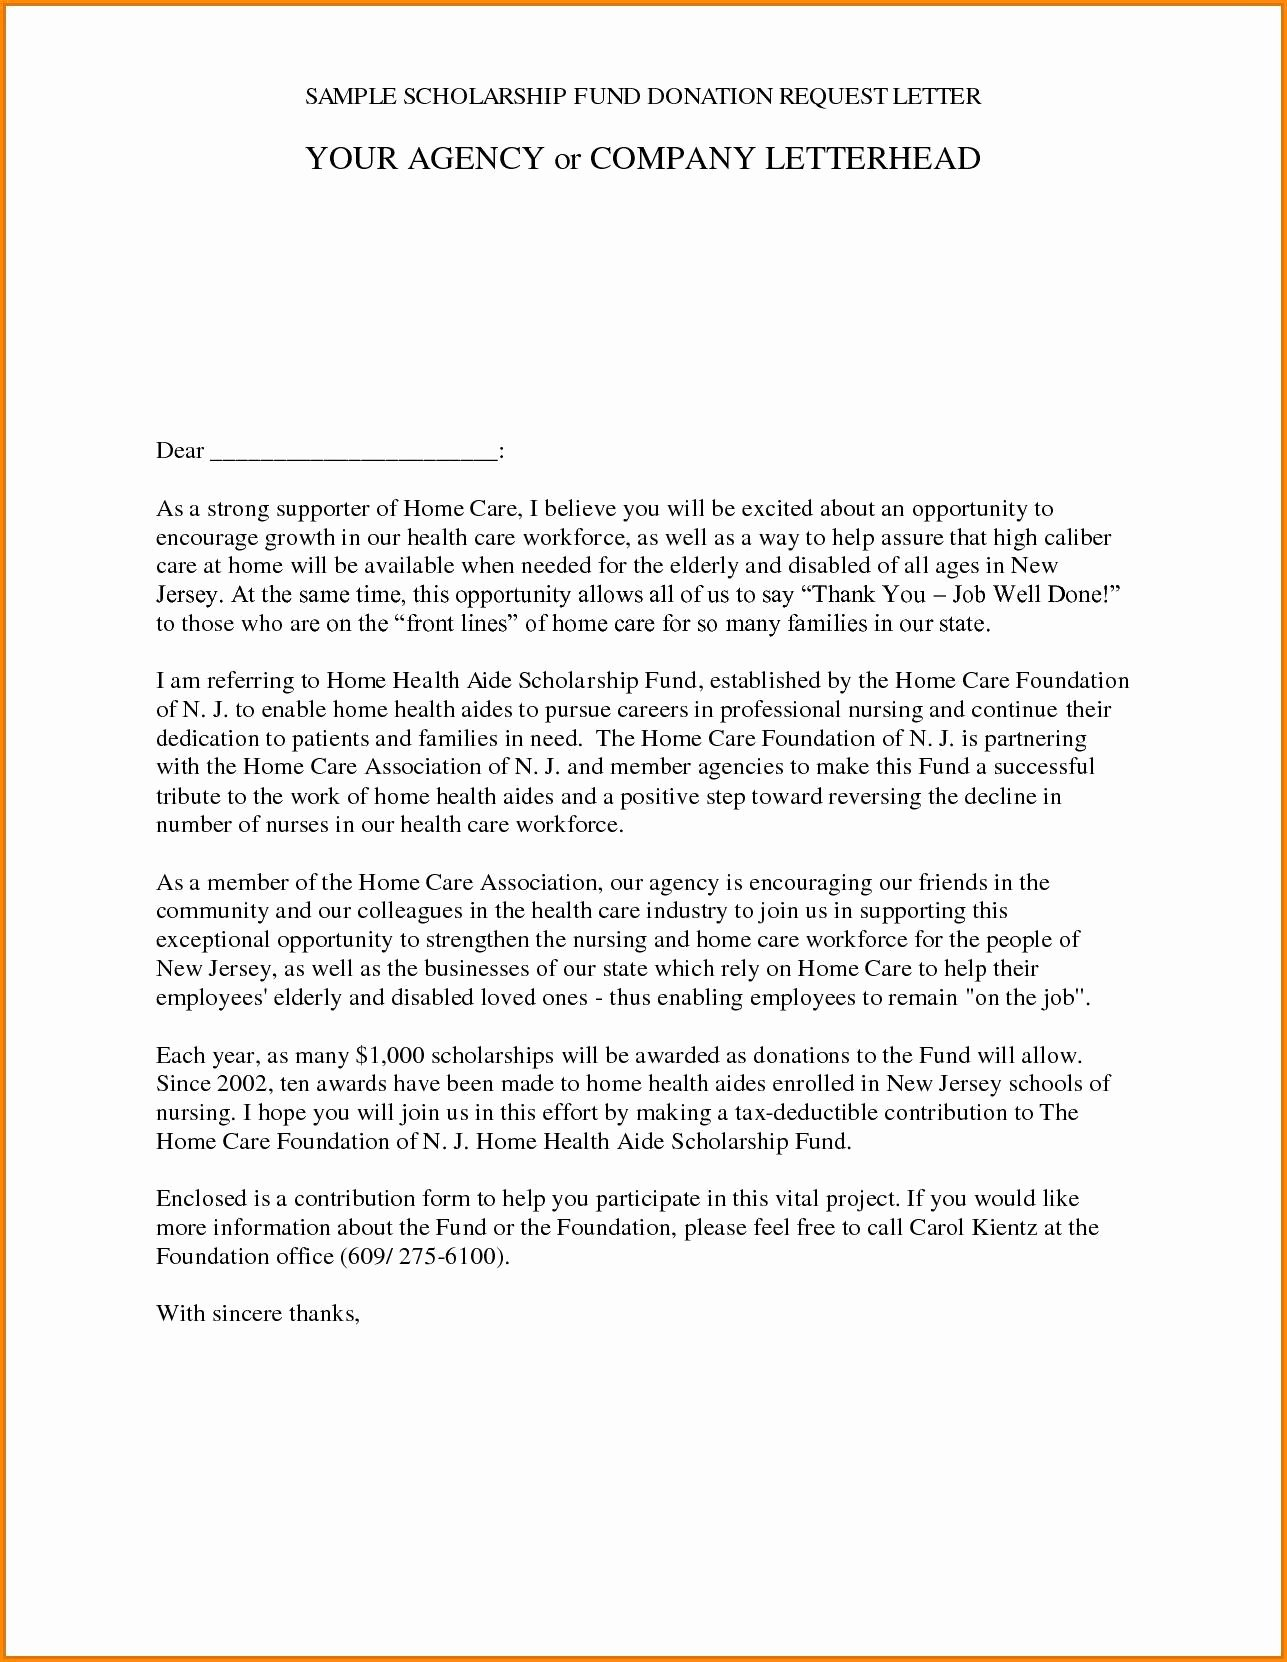 Memorial Donation Letter Template Elegant Memorial Donation Letter Template Samples